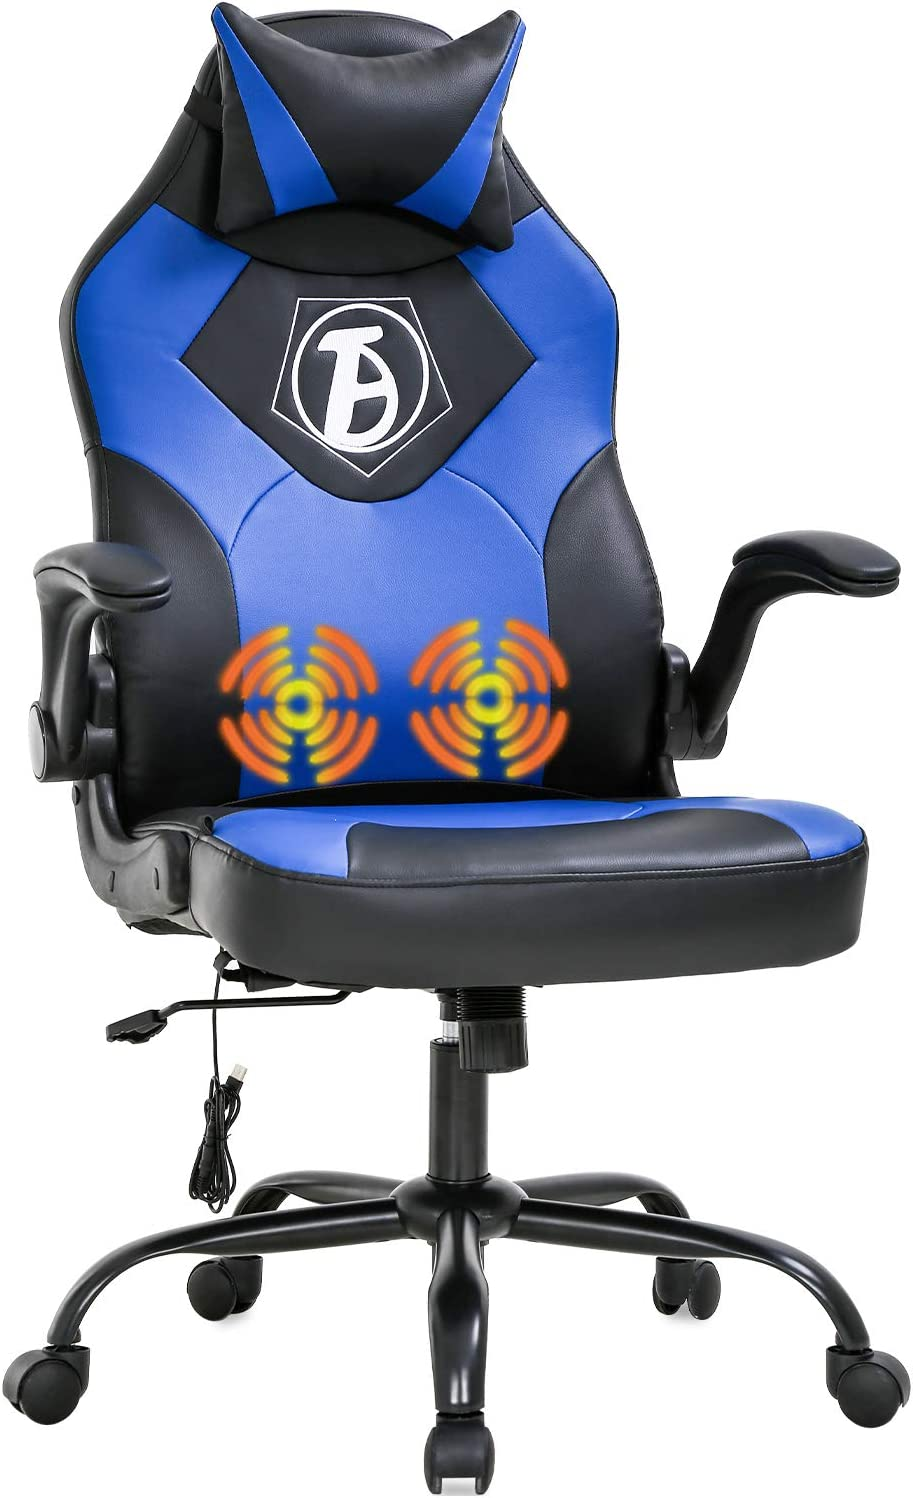 Gaming Chair Computer Chair Desk Chair PU Leather Adjustable Office Chair with Lumbar Support Headrest Armrest PC Ergonomic Task Rolling Swivel Massage Racing Chair for Women Adults(Blue)